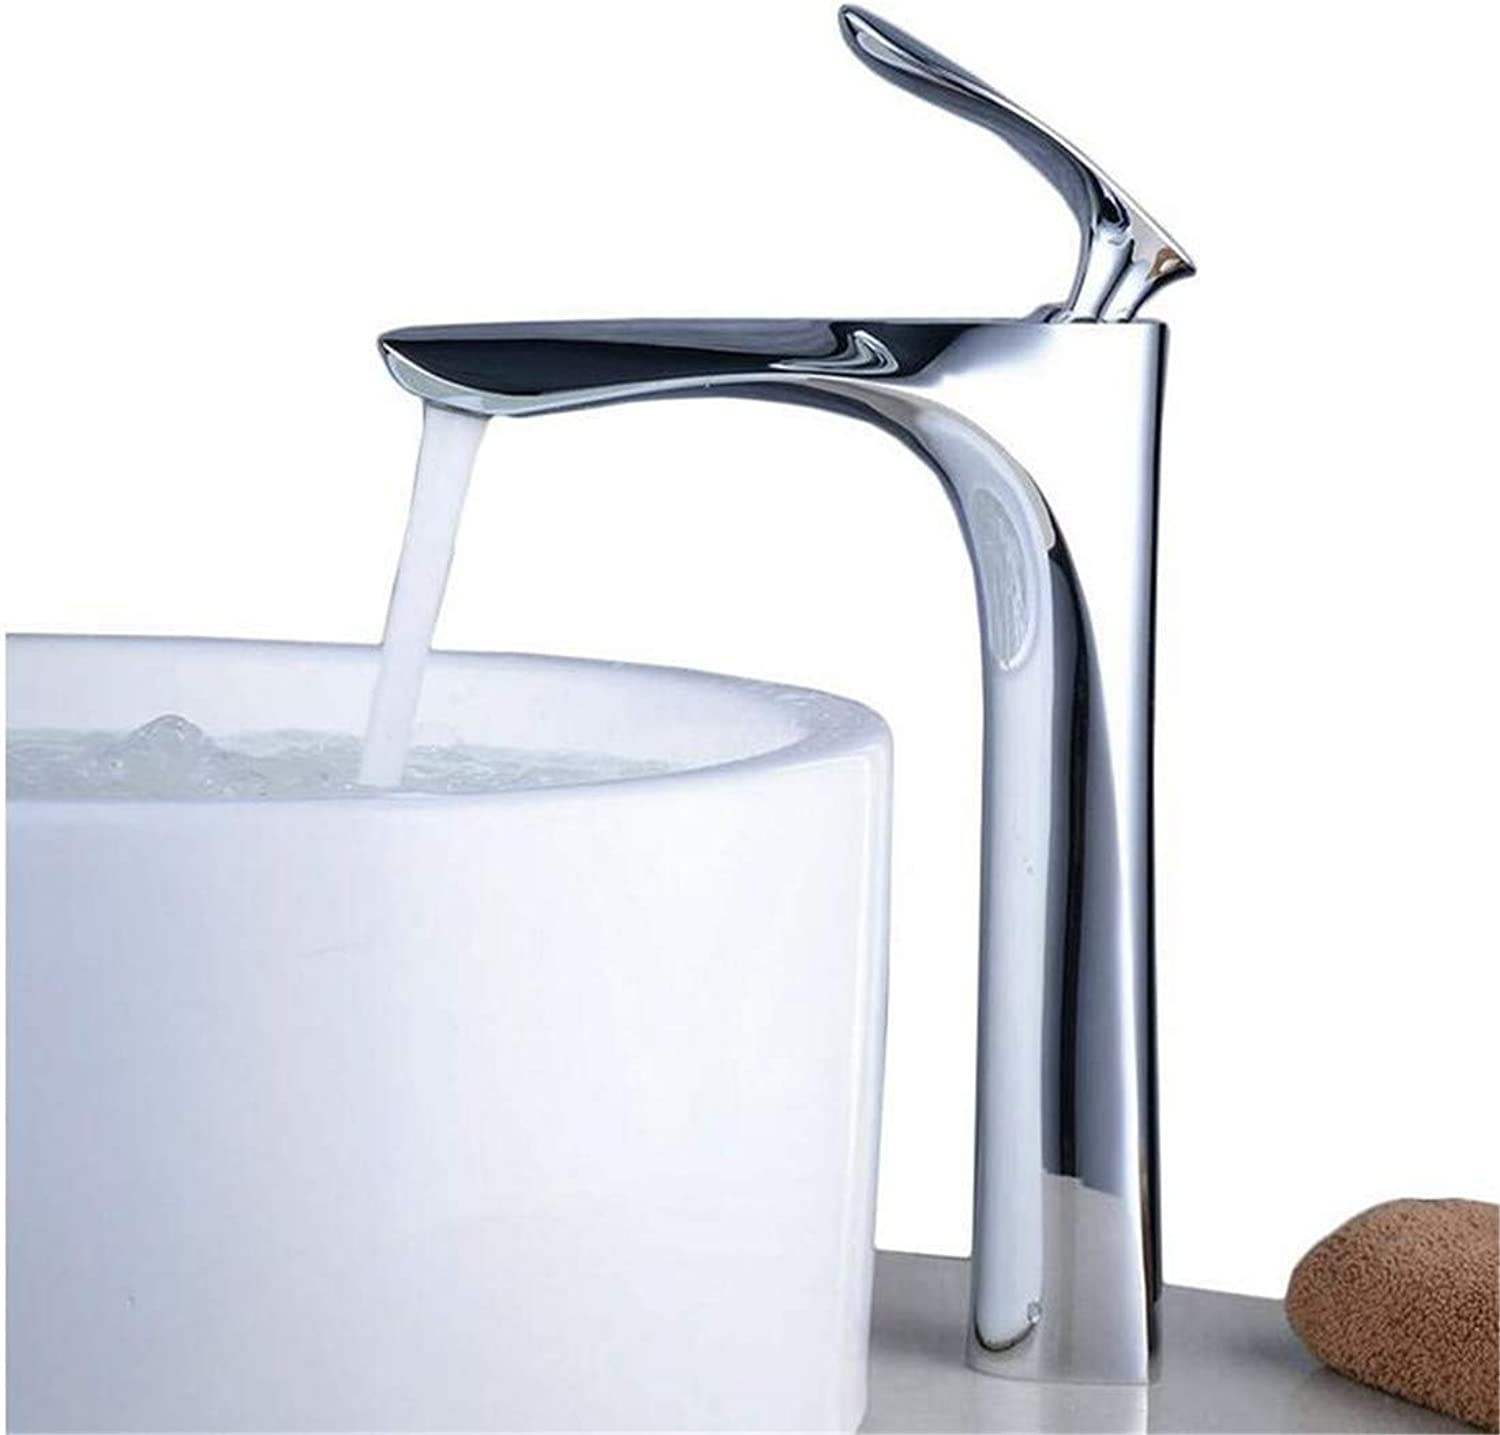 Faucet Luxury Modern Mixer Faucet Tall Counter Top Basin Mixer Tap Curved Bathroom Sink Tap